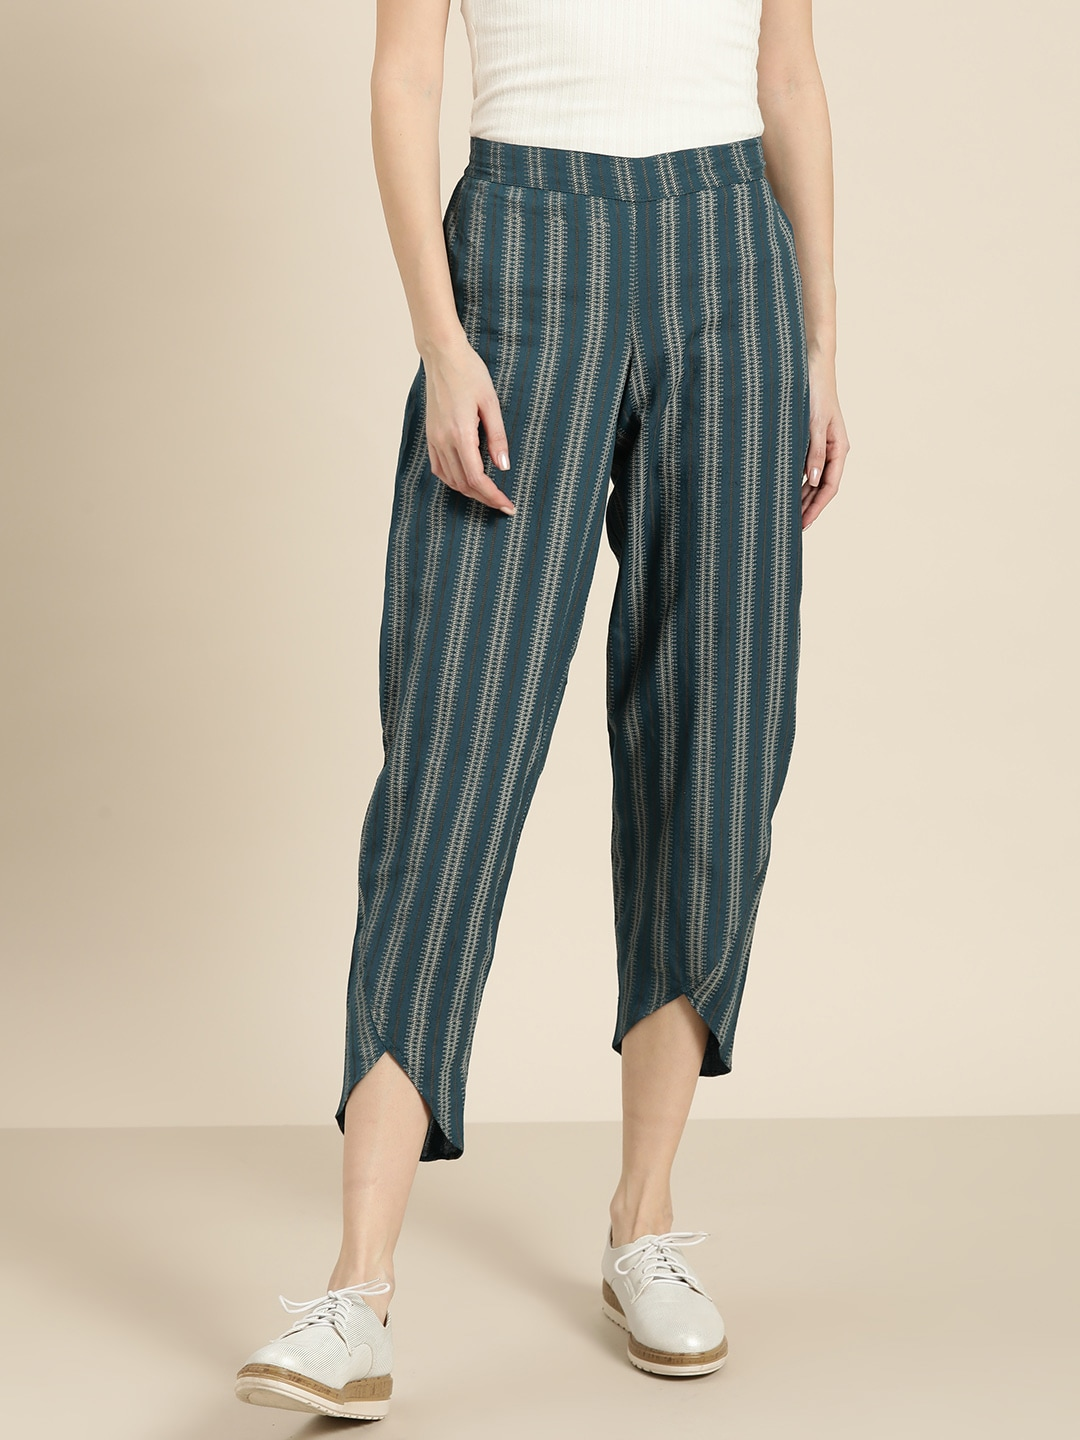 Shae by SASSAFRAS Women Teal Blue & Off-White Regular Fit Striped Cropped Trousers